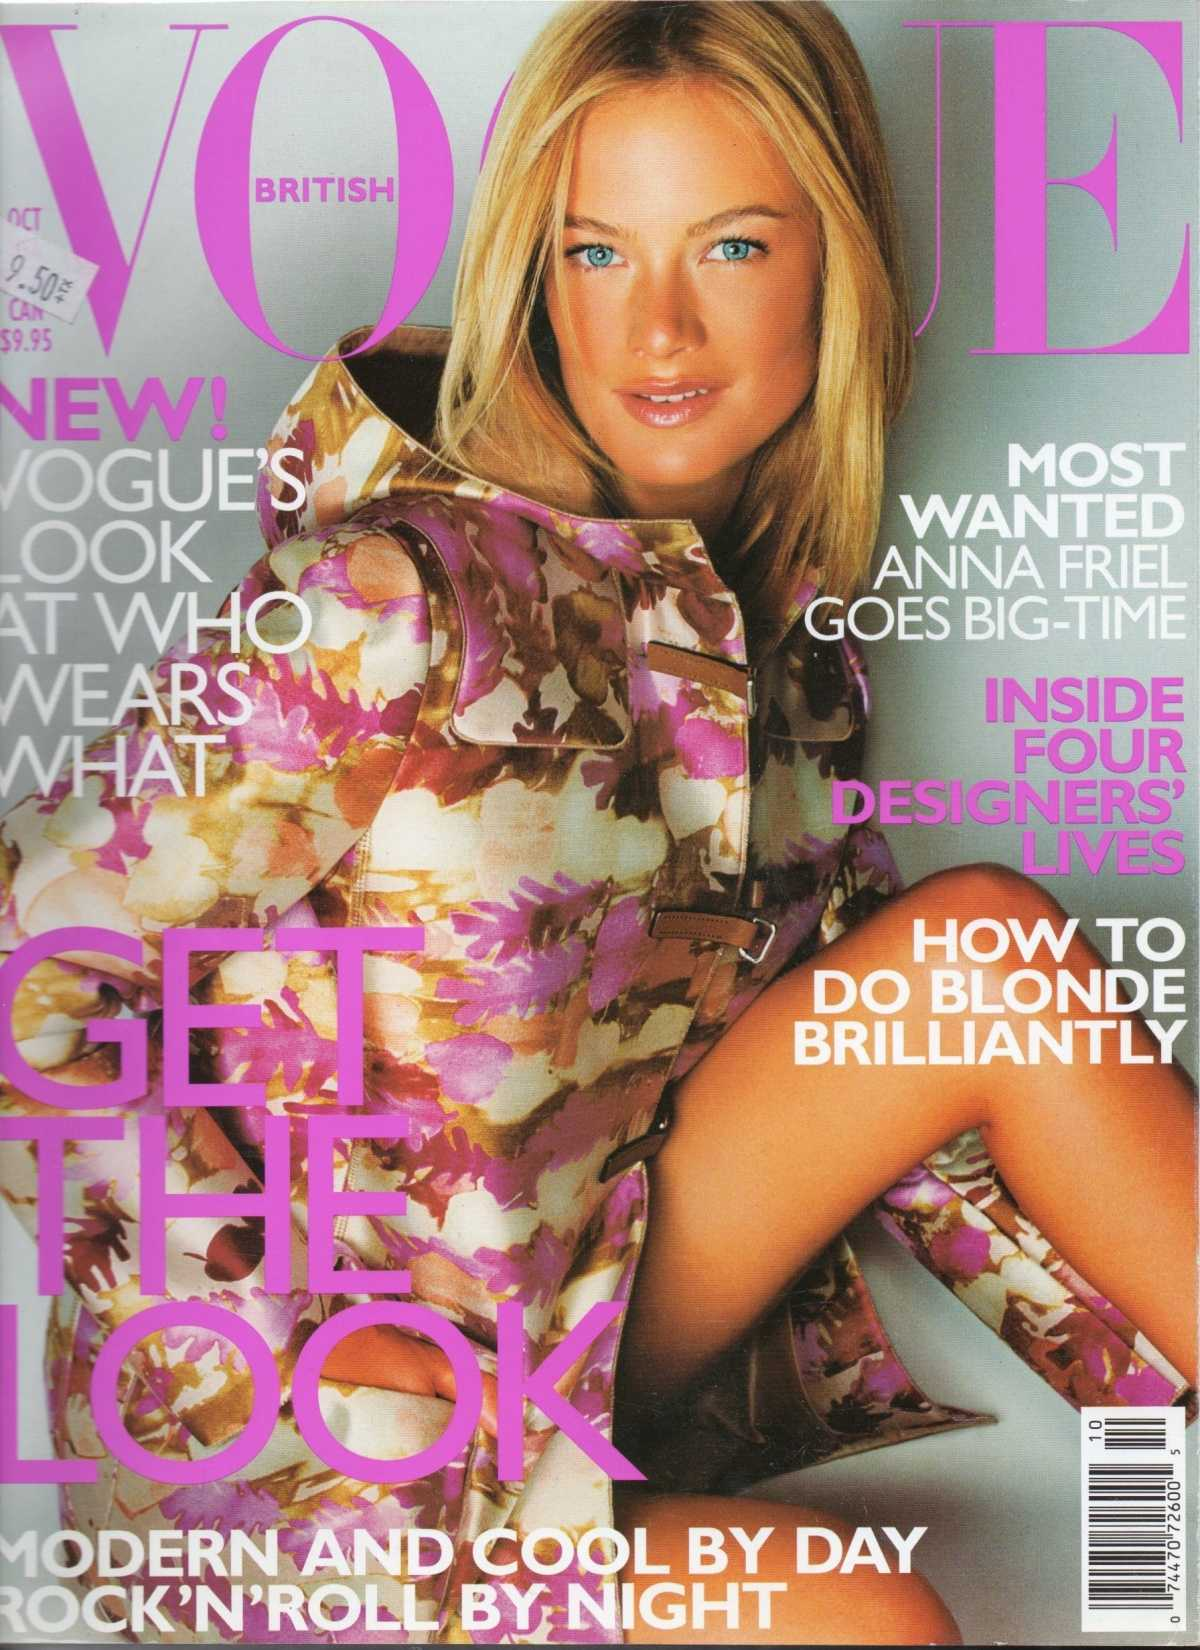 1159 British Vogue Covers – History of Fashion (Images)